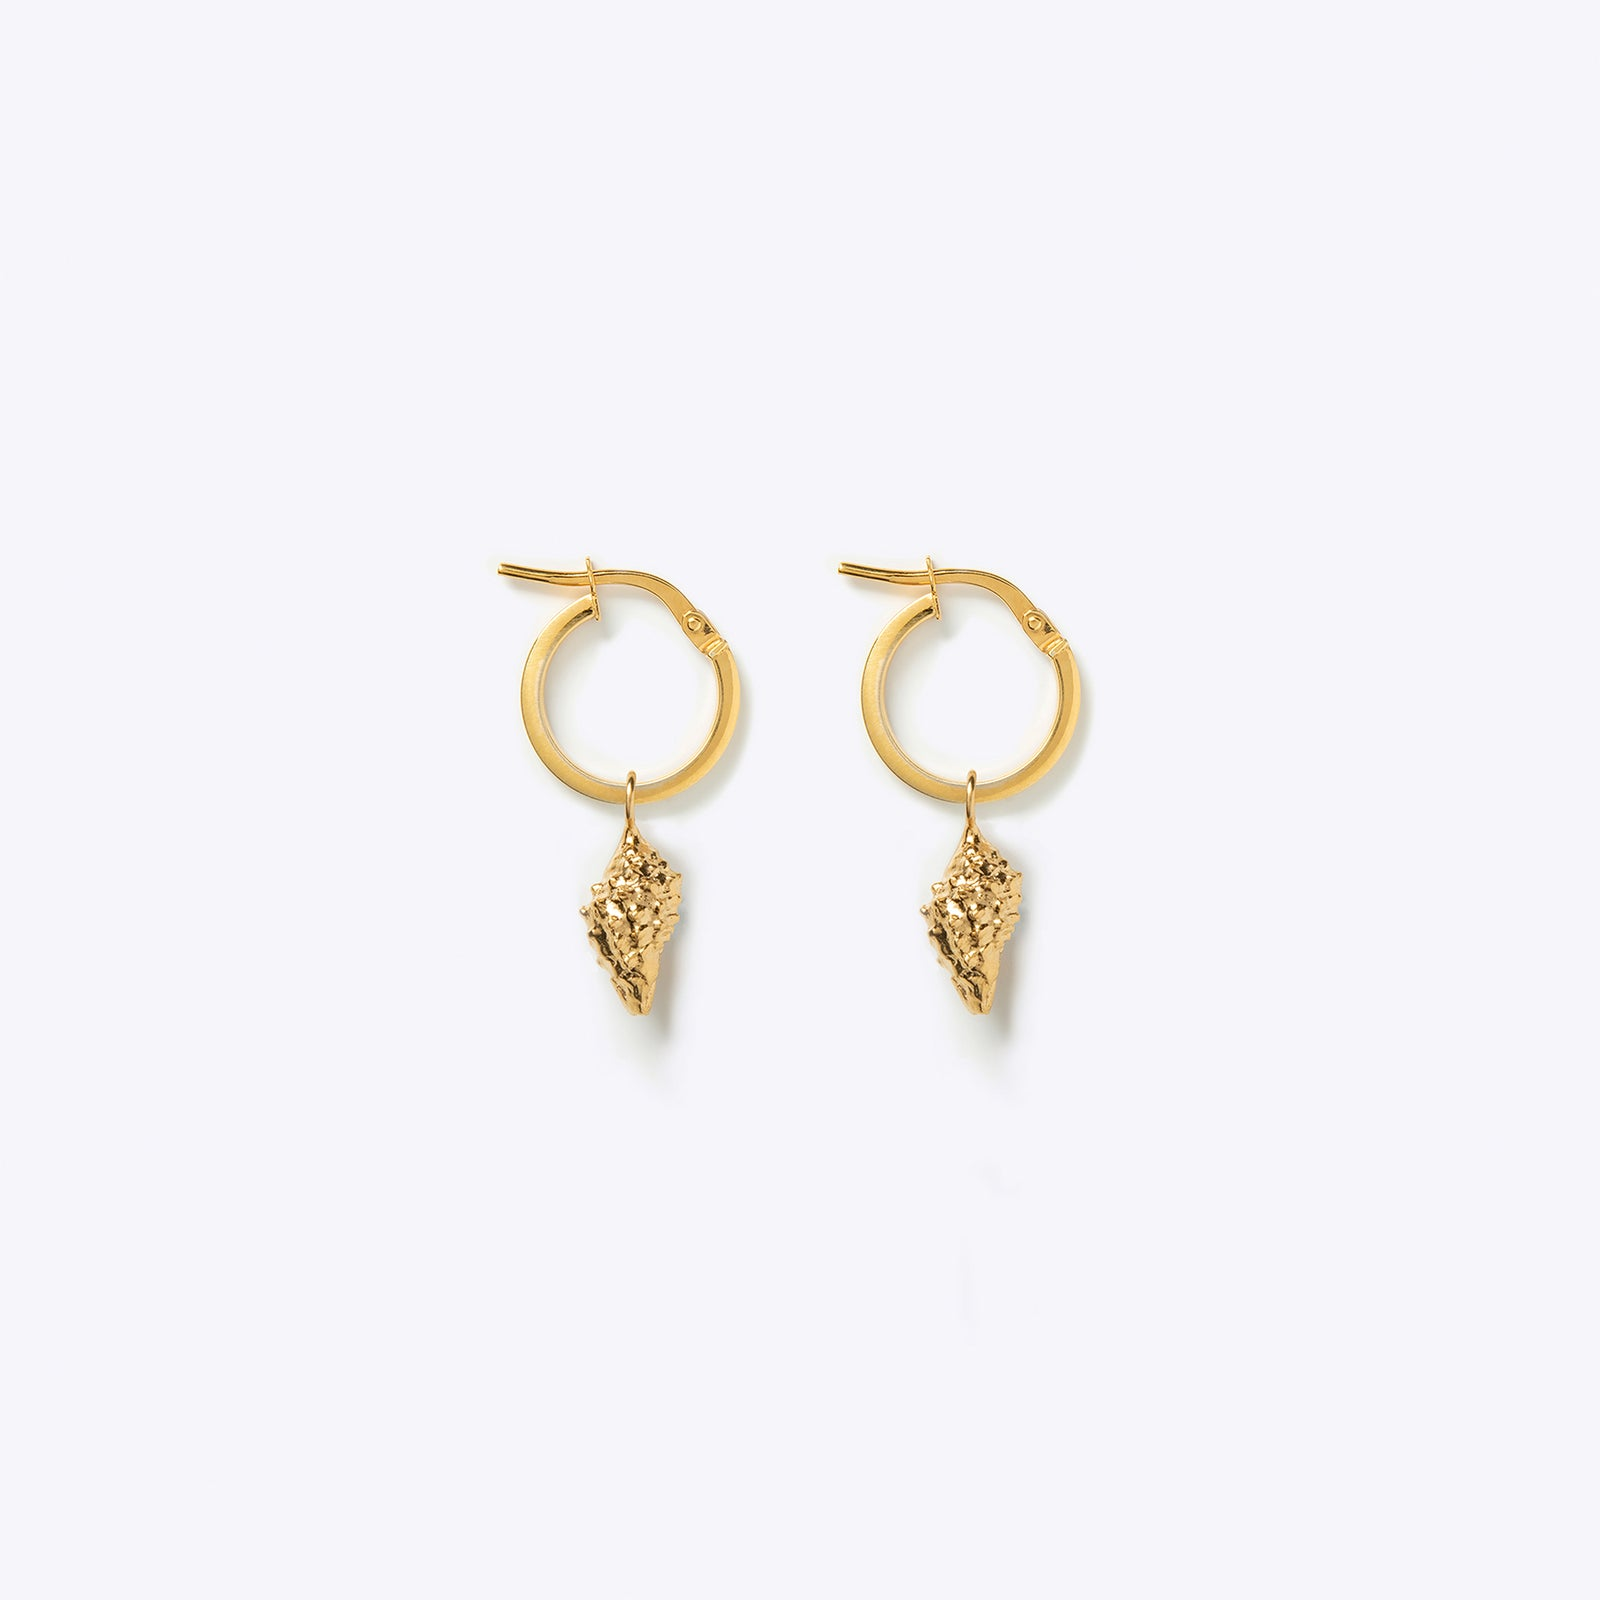 Wanderlust Life creole gold hoop earrings with concha shell charm. Designed in the UK, ethically made in the UK.